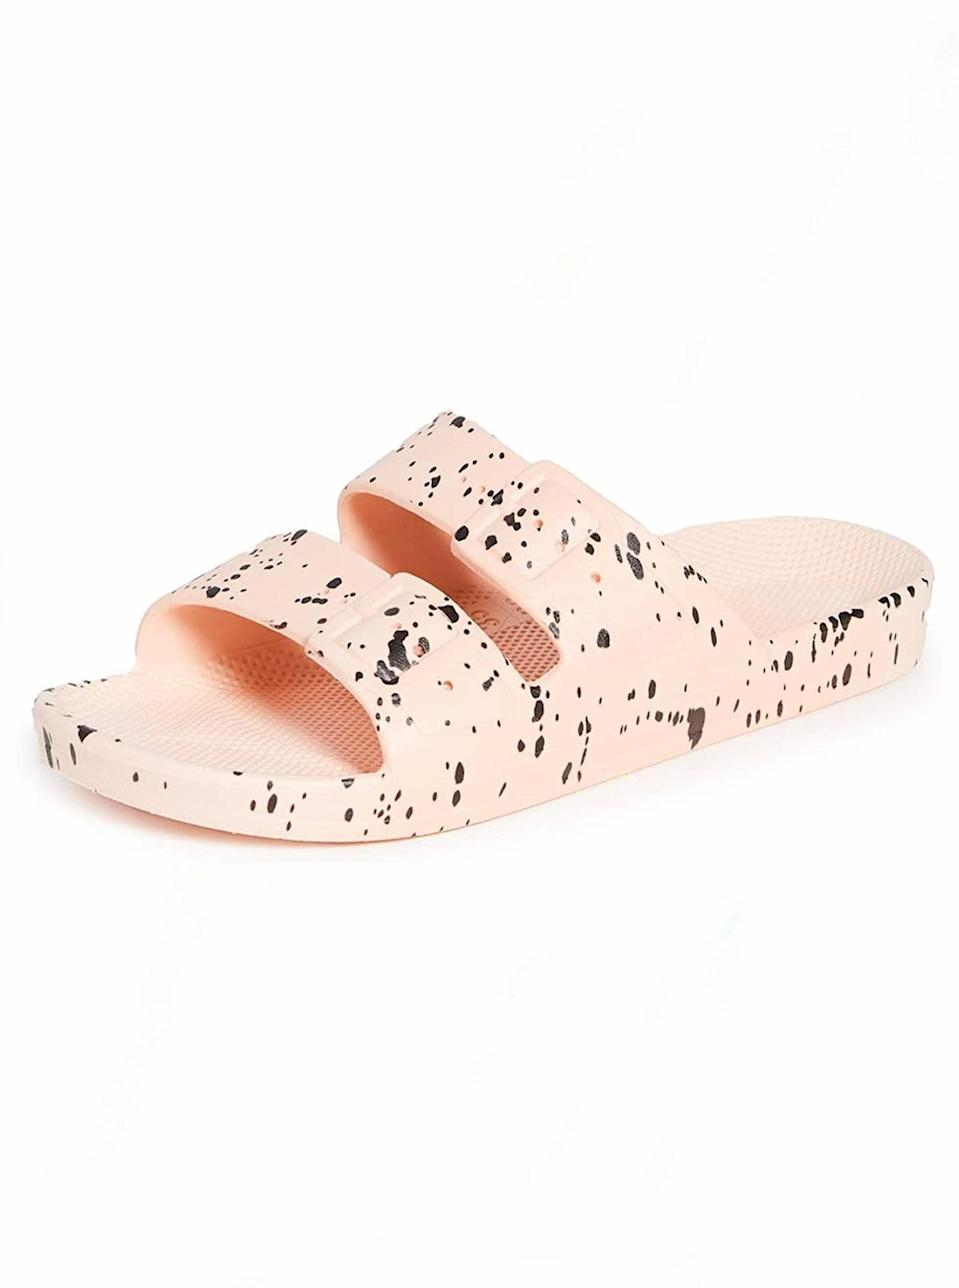 "These lightweight waterproof slides are a must for the mom who has a beach day or tropical vacay on her agenda this summer, and you can choose from countless other colors and prints if she's not into pink. $50, Amazon. <a href=""https://www.amazon.com/dp/B08B7V2BV1/ref="" rel=""nofollow noopener"" target=""_blank"" data-ylk=""slk:Get it now!"" class=""link rapid-noclick-resp"">Get it now!</a>"